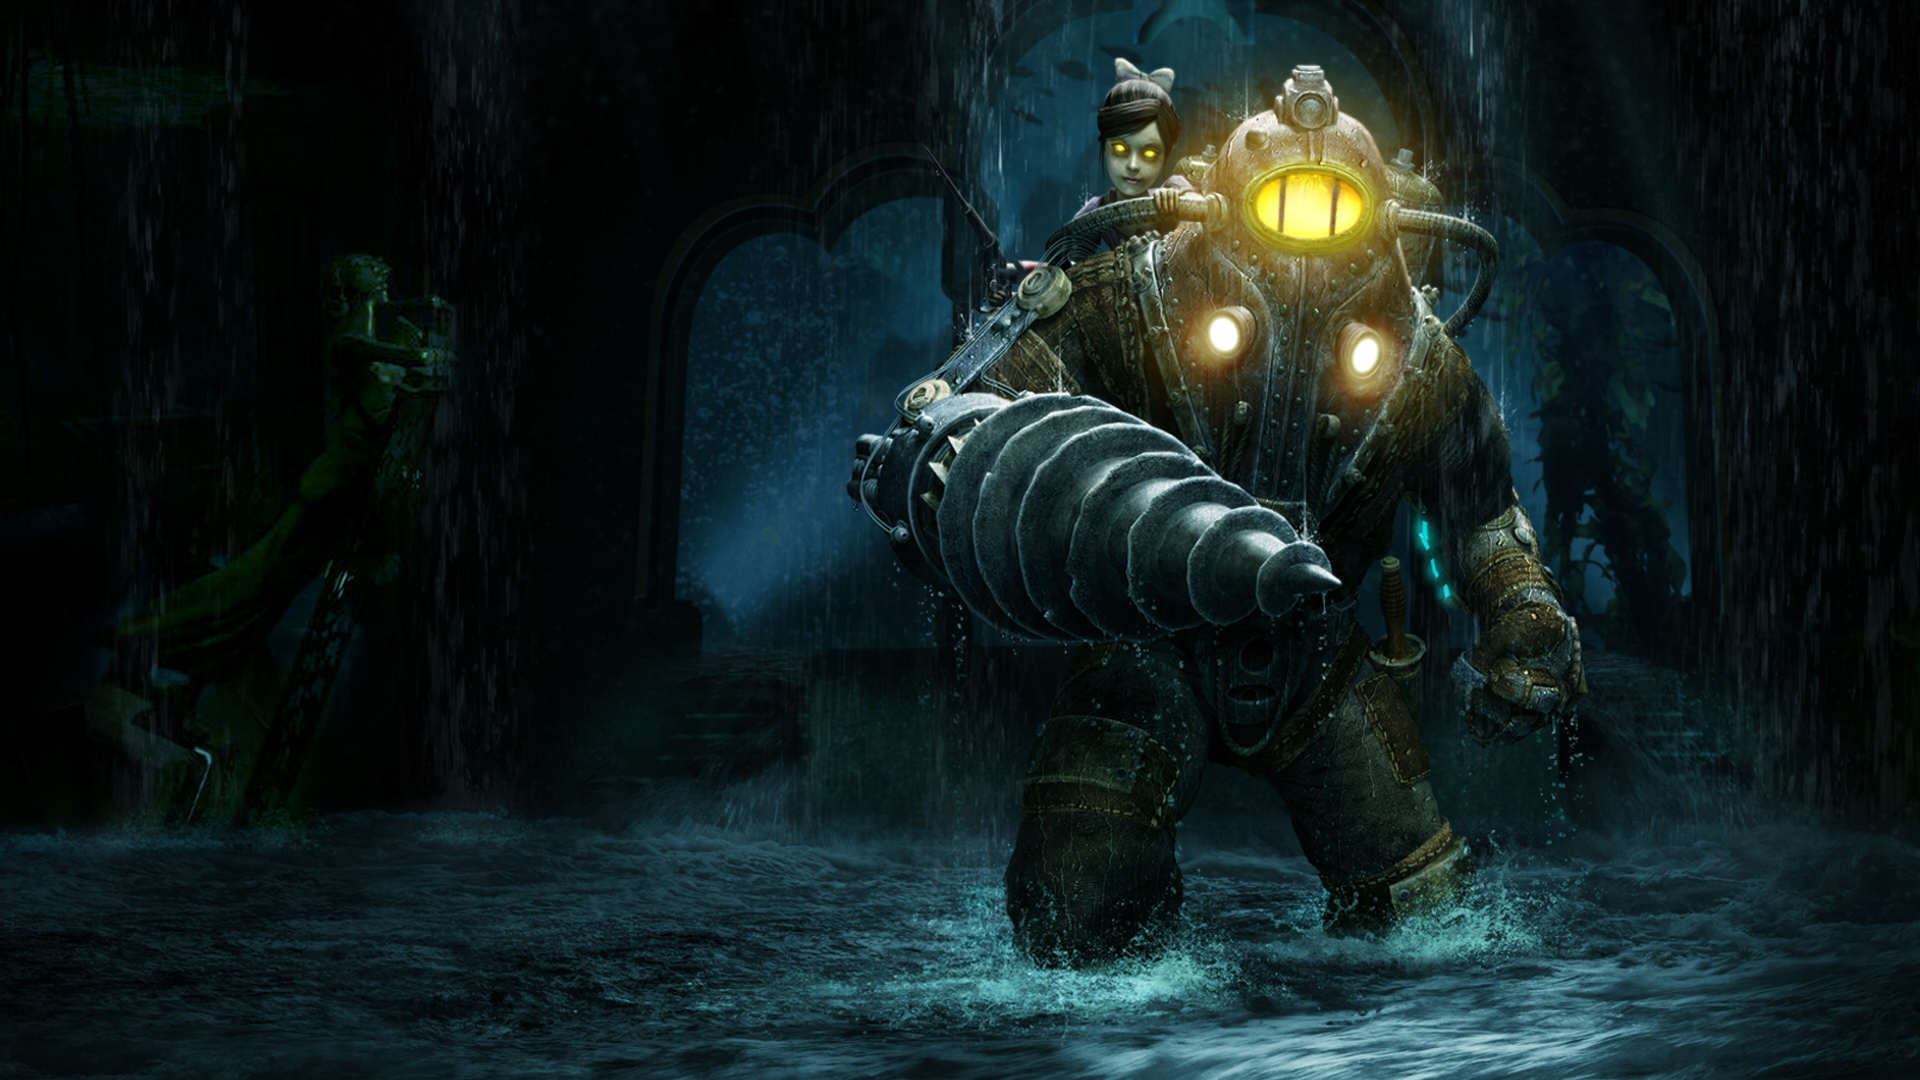 2308703 1270723055 biosh 1 Bioshock: The Collection Box Art Potentially Leaked Online